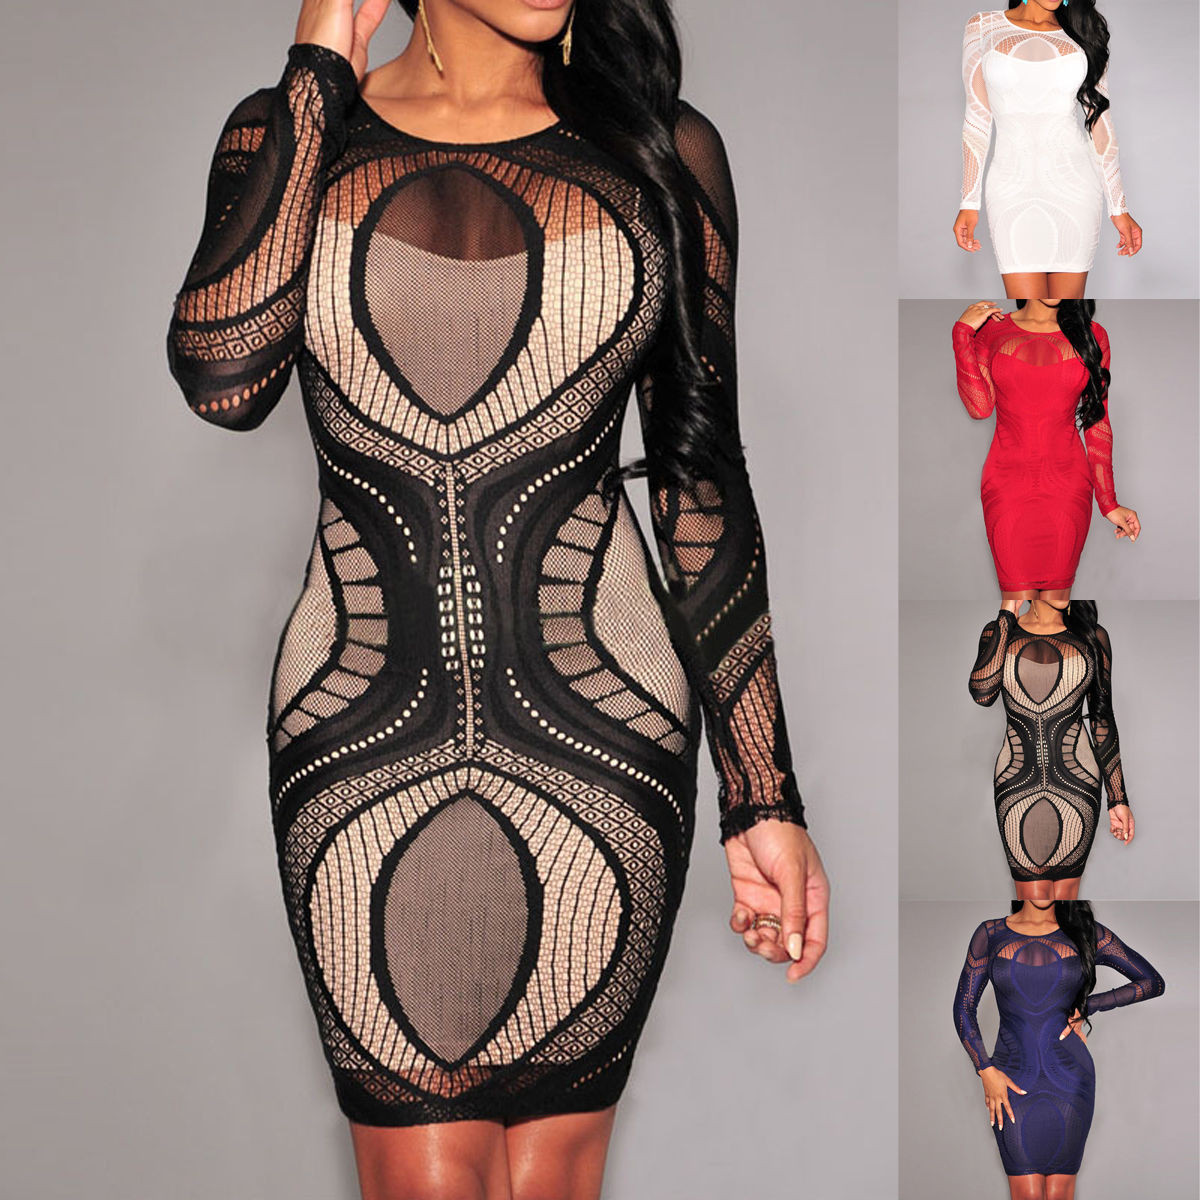 0d8a5294c97 Details about Women Sexy Bandage Bodycon Summer Evening Cocktail Party Long  Sleeve Mini Dress